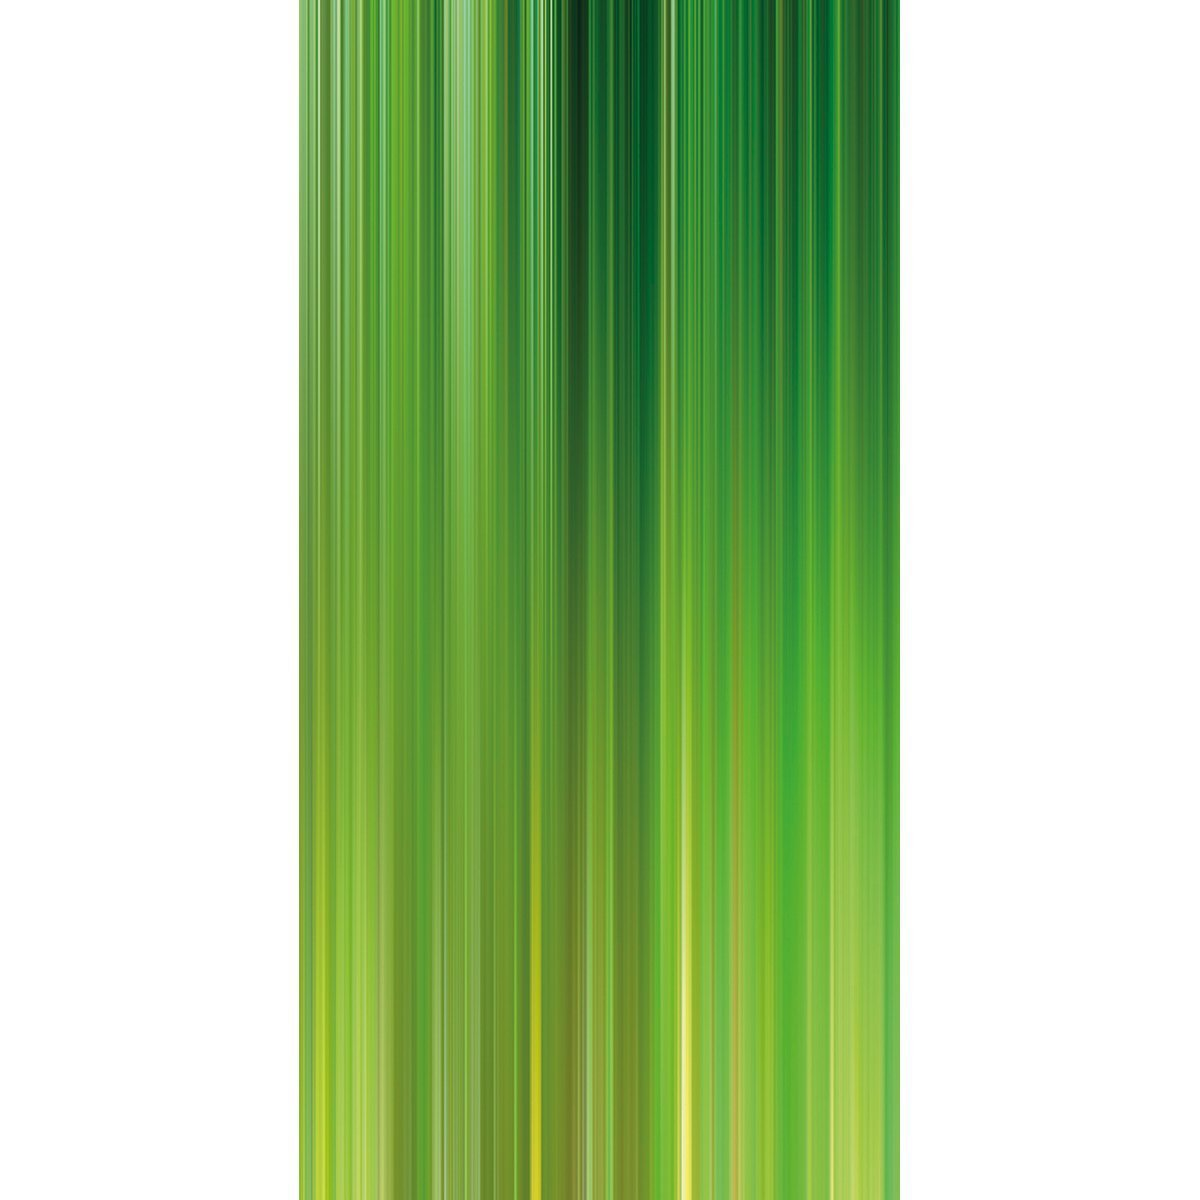 Wall Acoustics Panel 4 Muffle Abstract Mural - Kinetic Green Panel 4